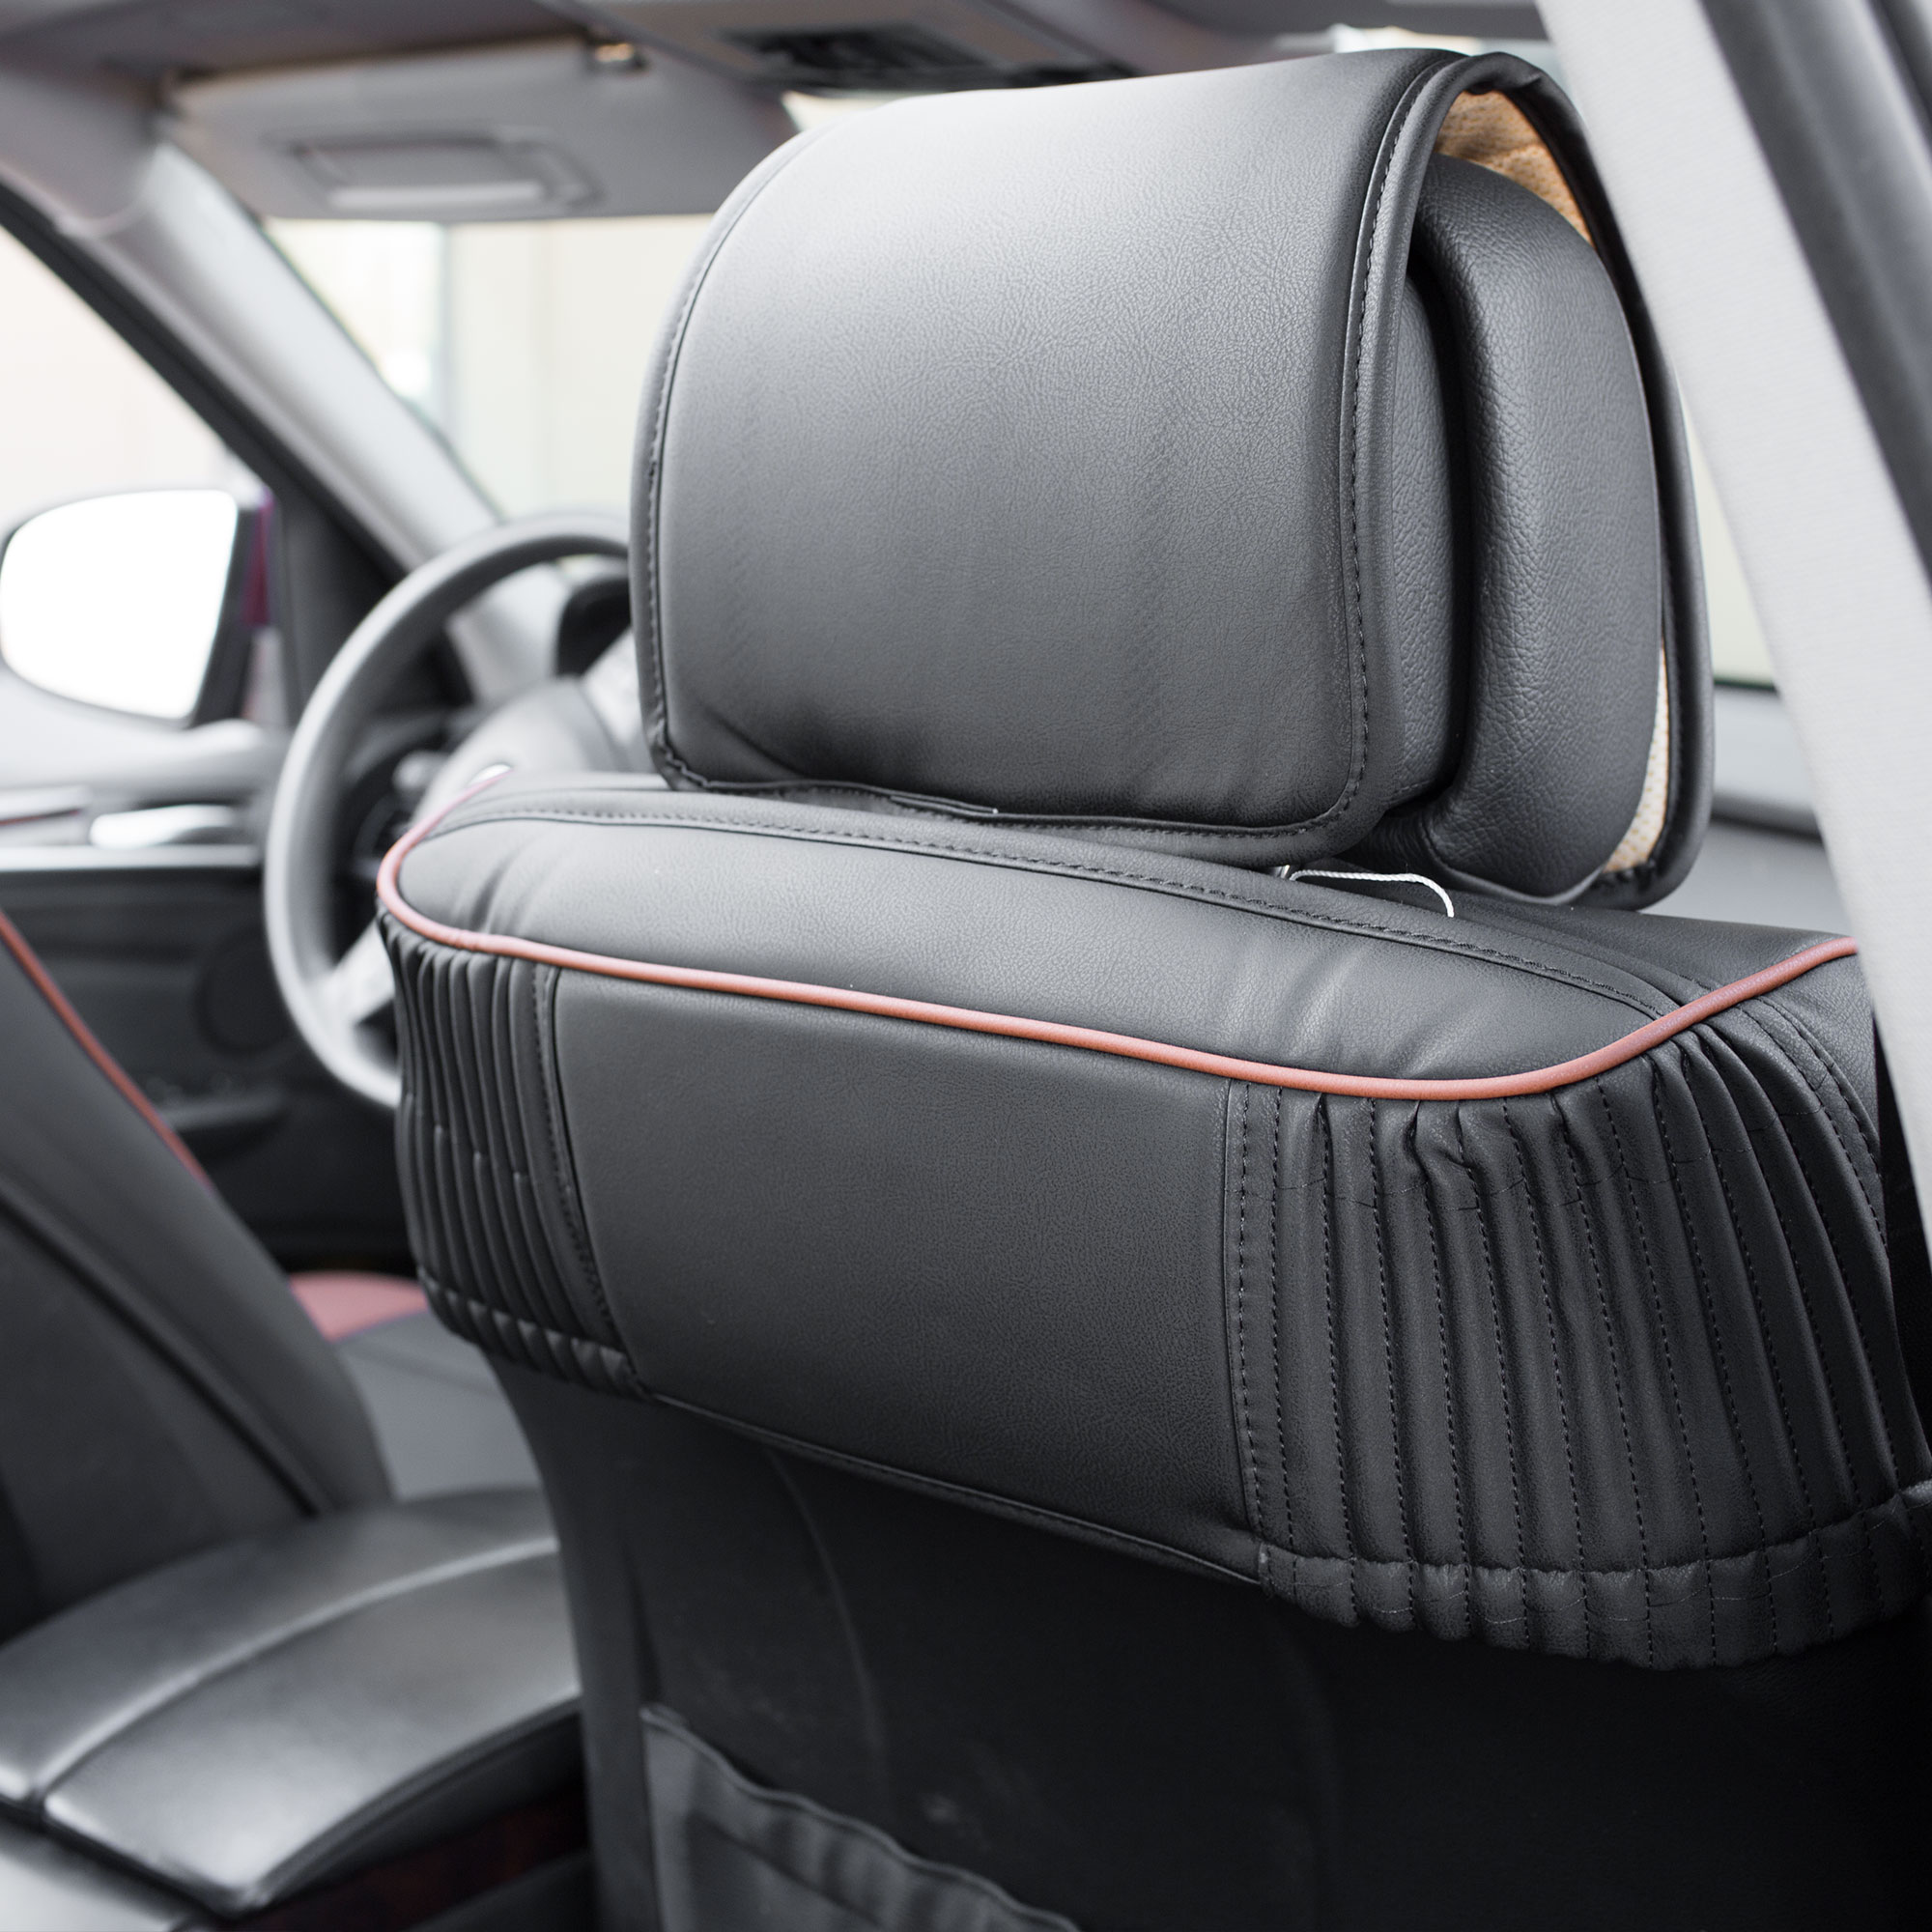 Luxury-Leather-Seat-Cushion-Covers-Front-Bucket-Pair-11-Color-Options thumbnail 26